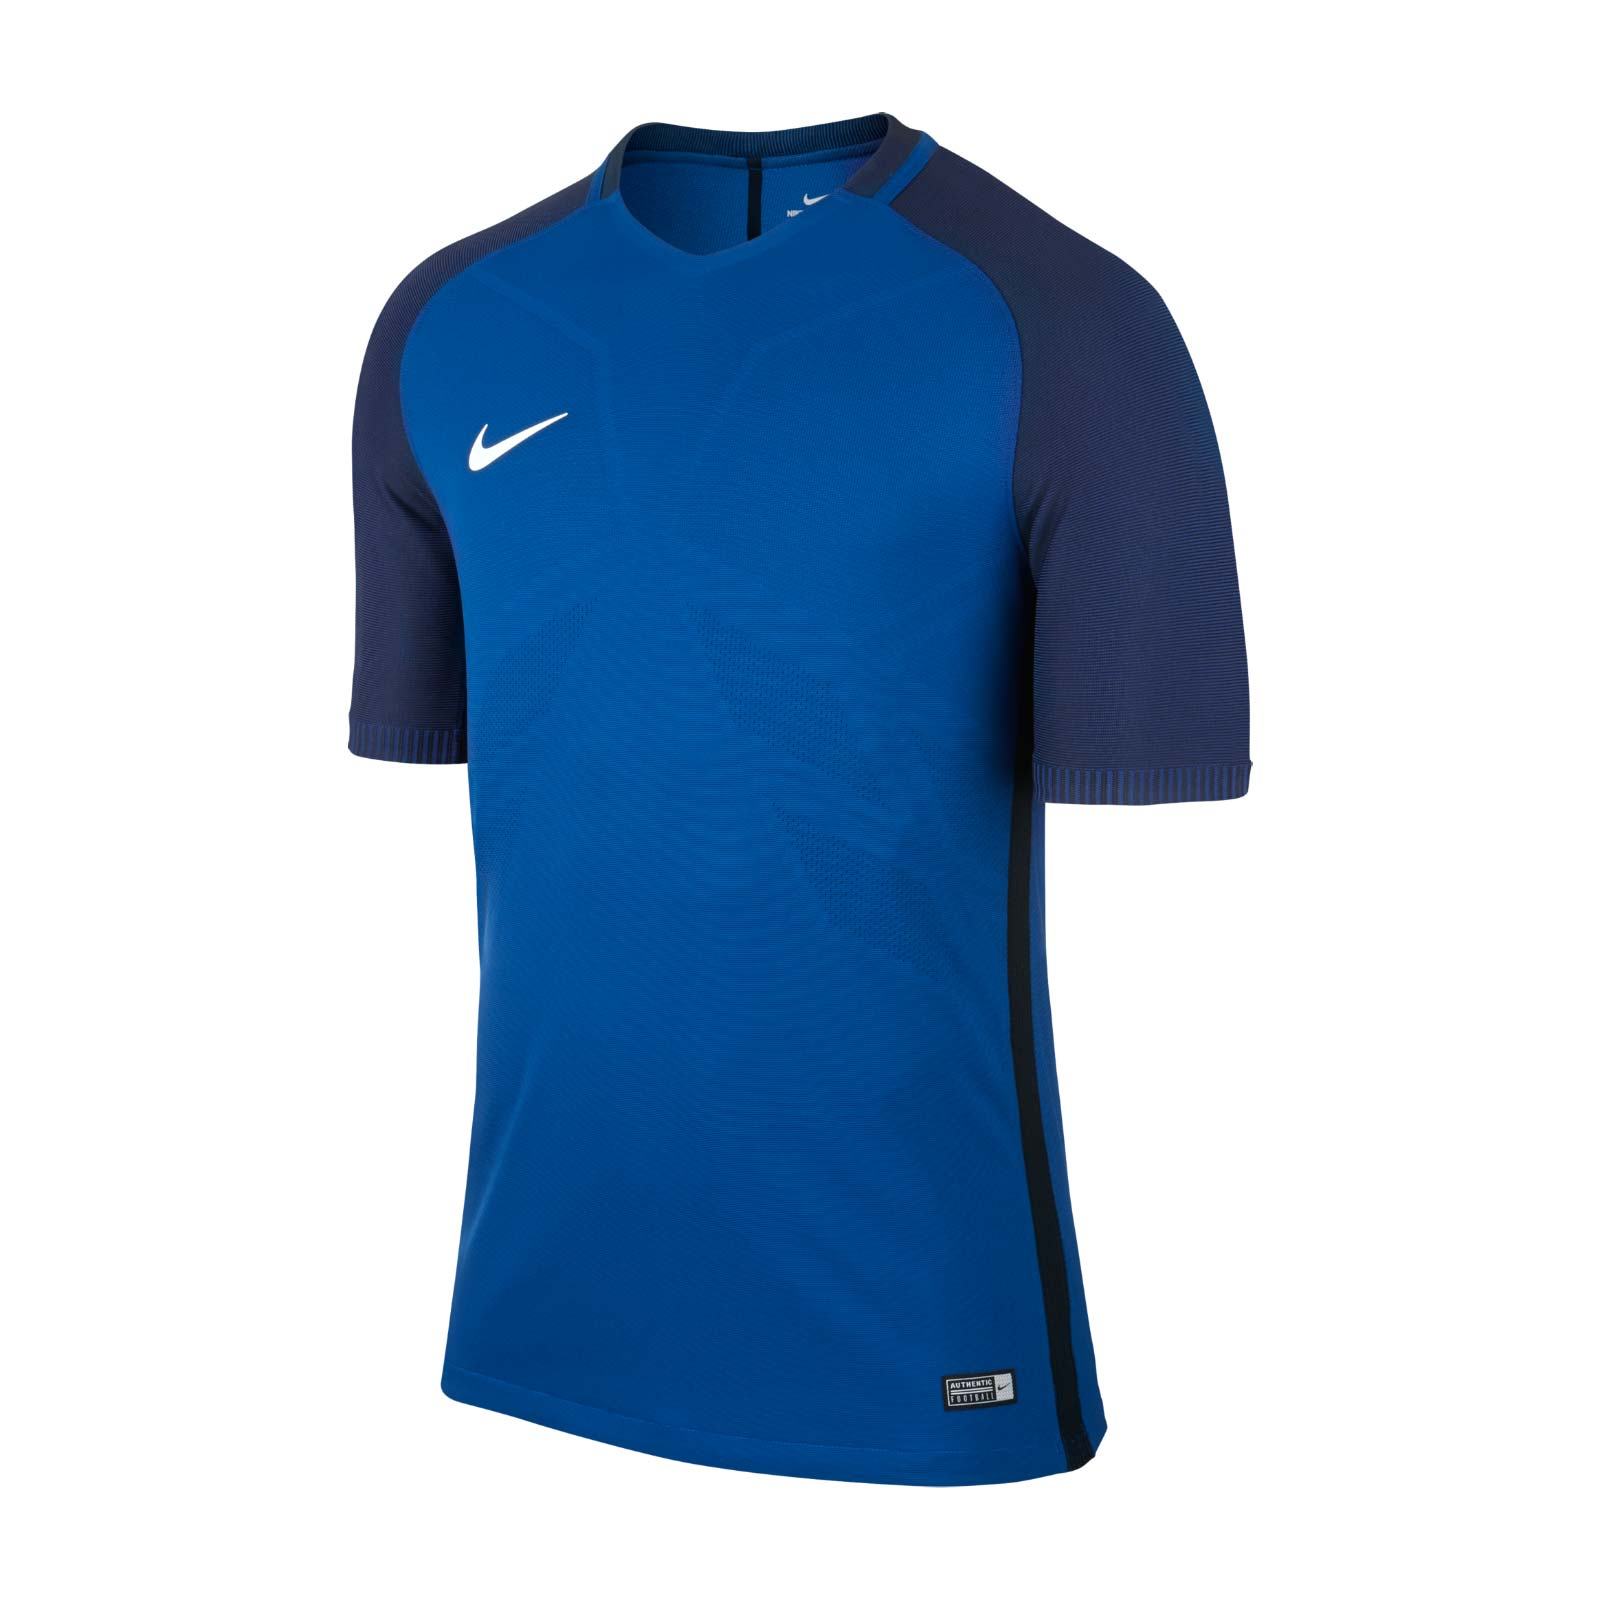 Shop for Authentic NFL Nike jerseys at the official online store of the NFL. Browse our selection of Official Nike NFL jerseys and uniforms at rahipclr.ga